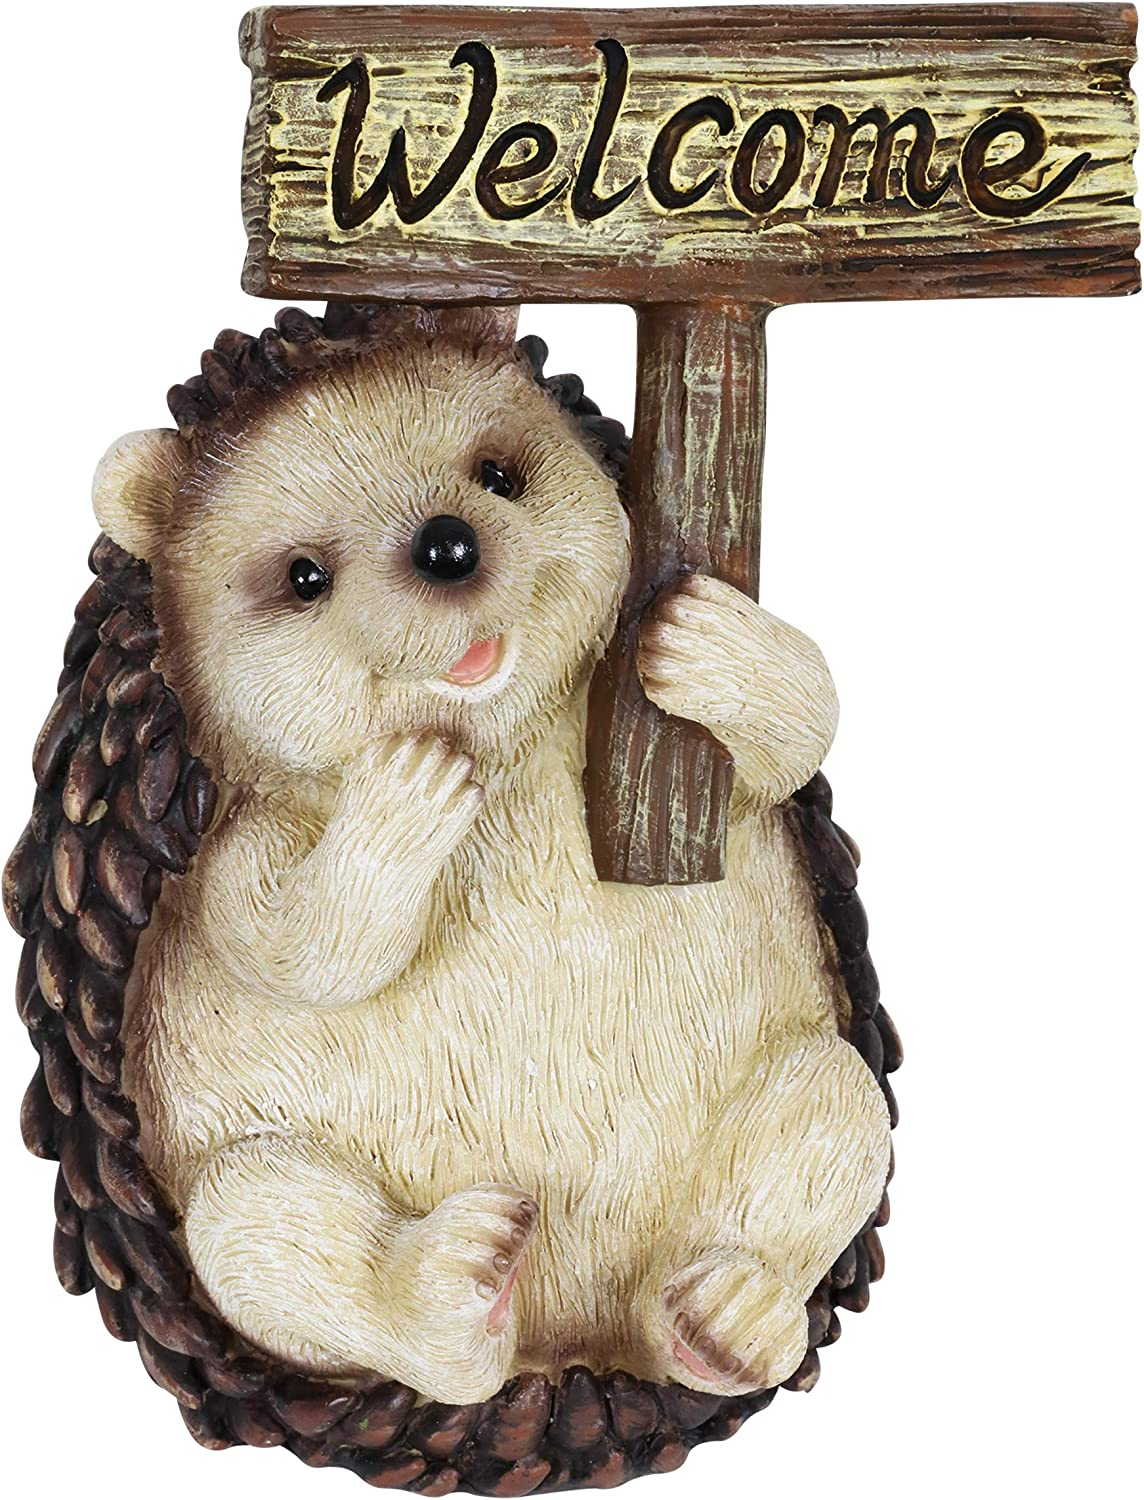 "Exhart Hedgehog Holding a Welcome Sign | Cute Garden Art Statue | Weather Resistant & Hand-Painted Outdoor Hedgehog Décor| UV Treated Resin Animal Statue for House or Patio | 7.0"" L x 6.5"" W x 8.5"" H"